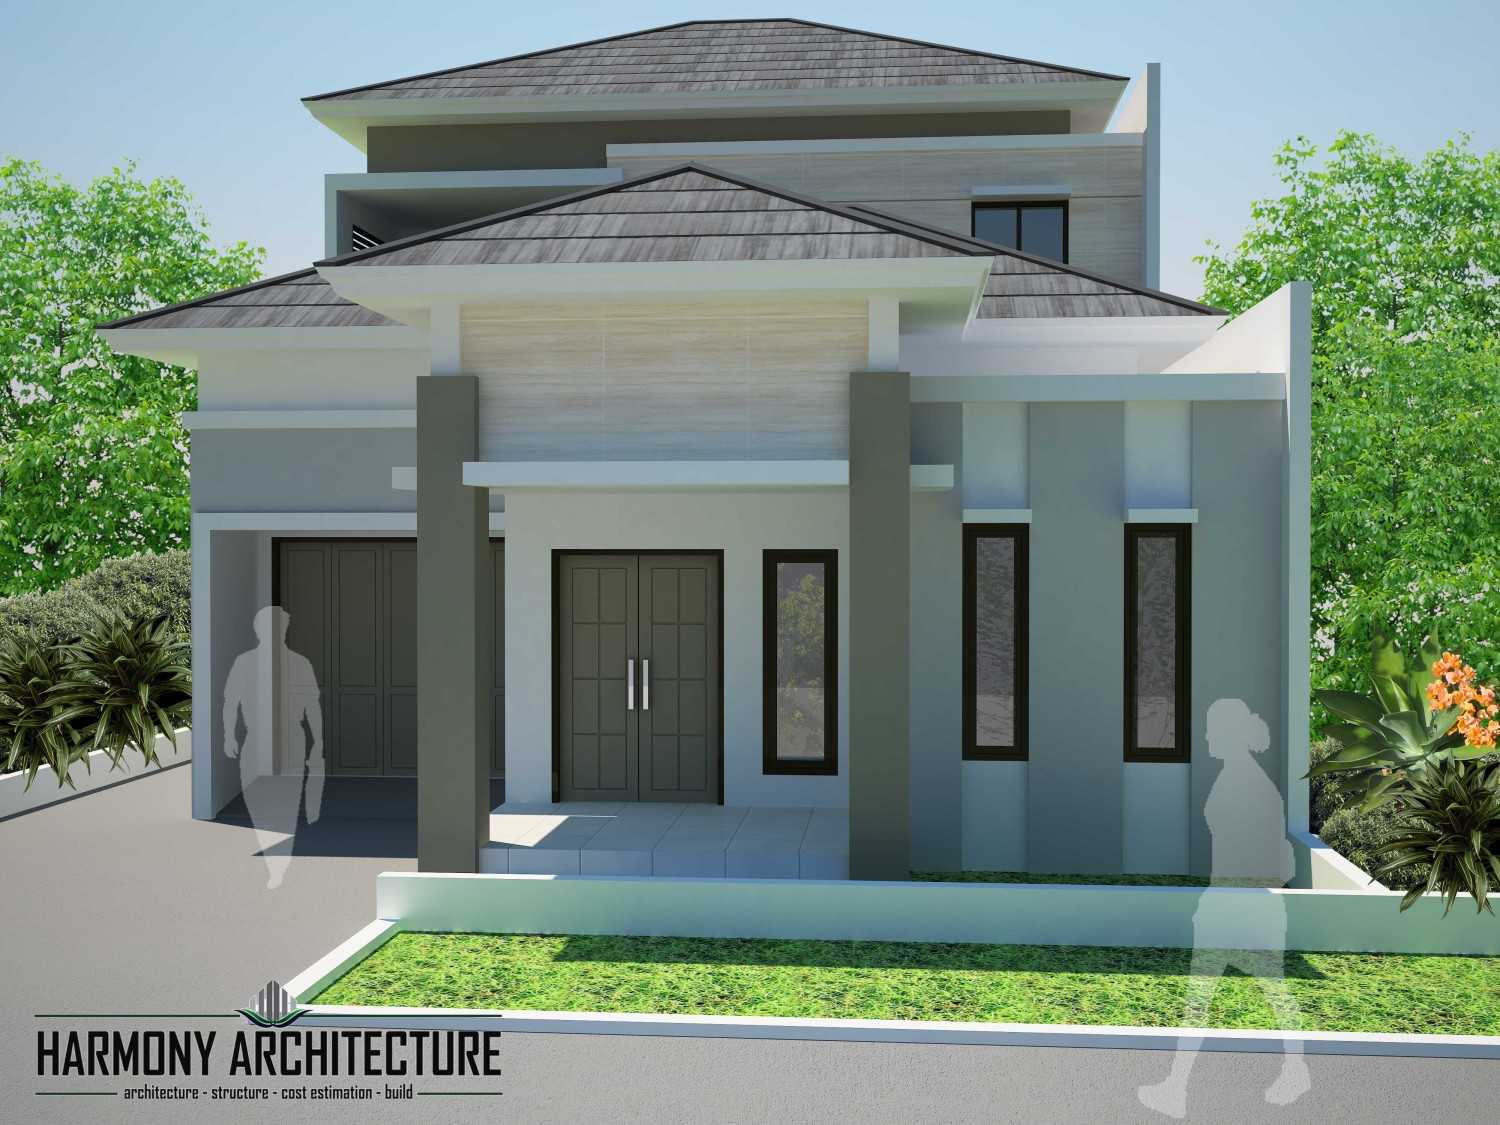 Jasa Design and Build HARMONY ARCHITECTURE di Aceh